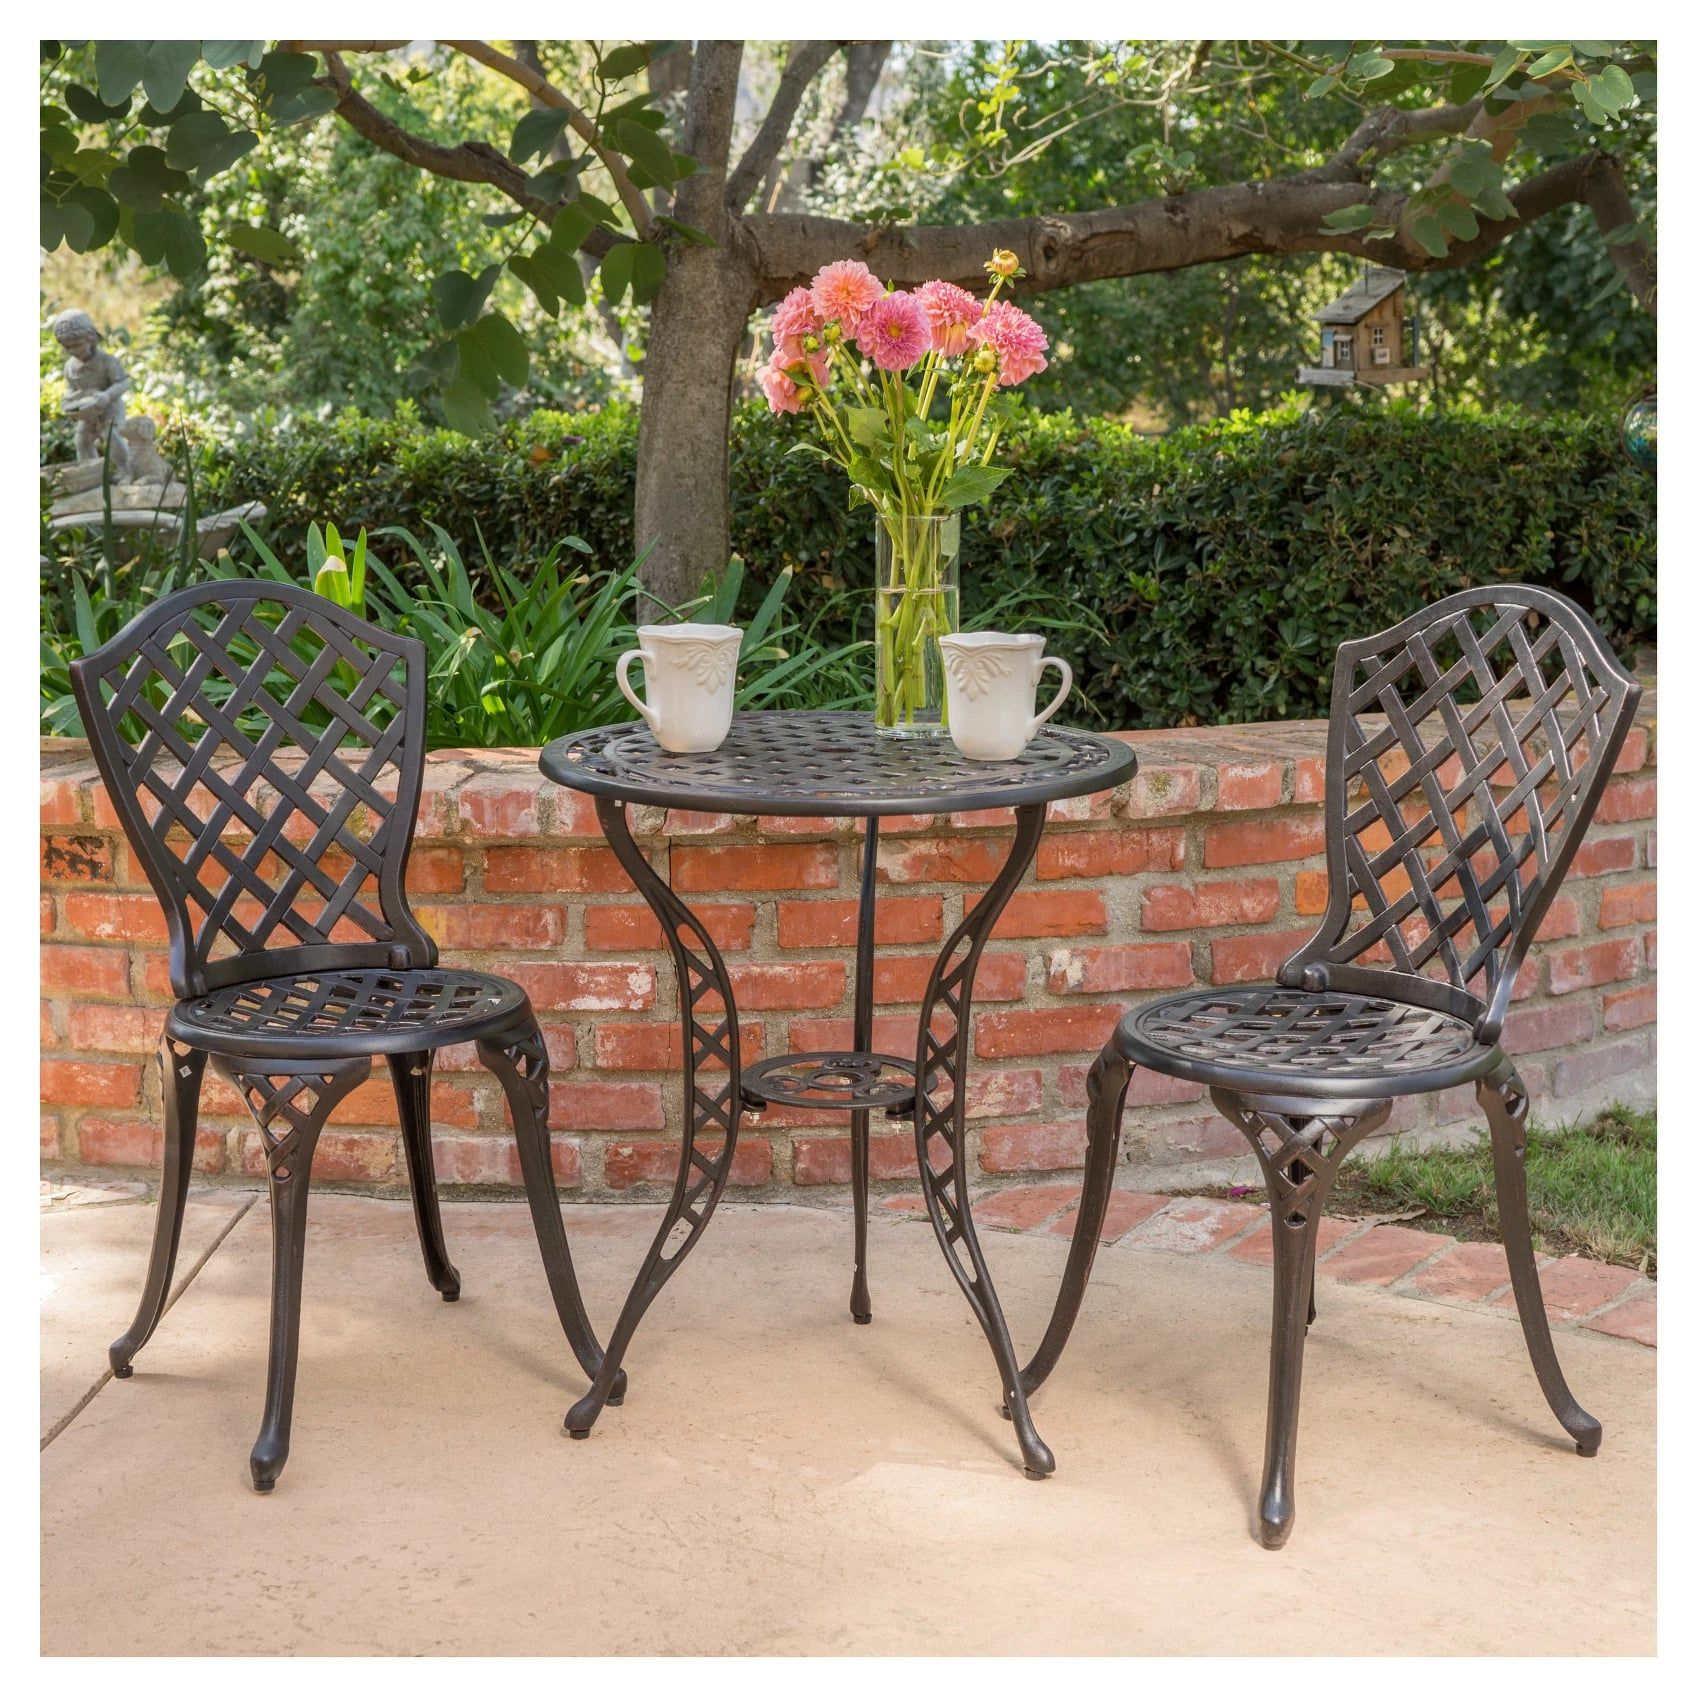 Turn Your Backyard Into A Chic And Relaxing Oasis With These 85 Target Furniture Finds In 2020 Outdoor Bistro Set Outdoor Patio Decor Outdoor Patio Set